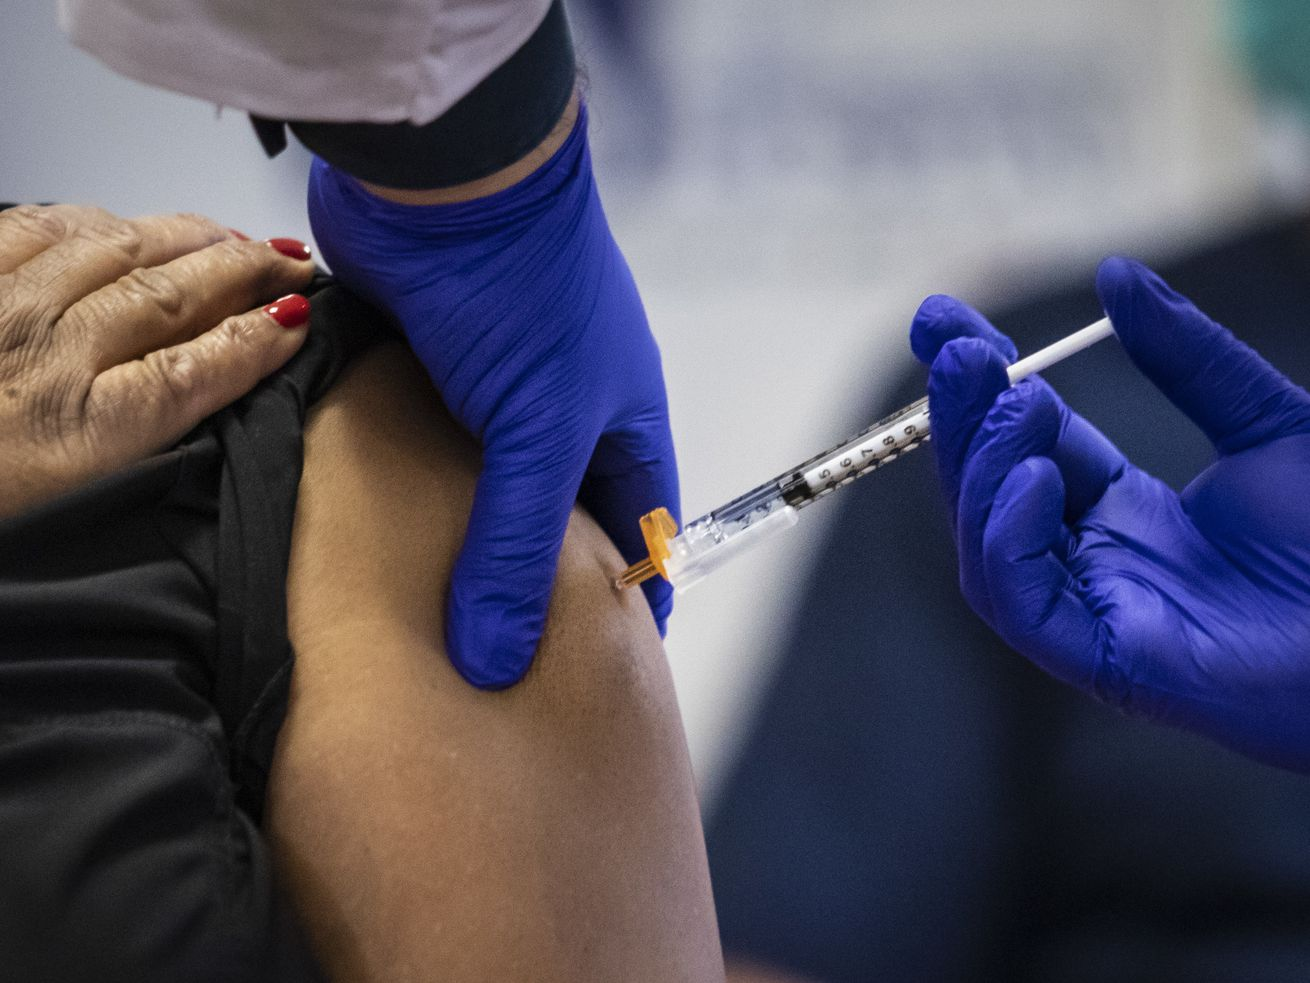 Here's how to get more information on COVID vaccines in your county